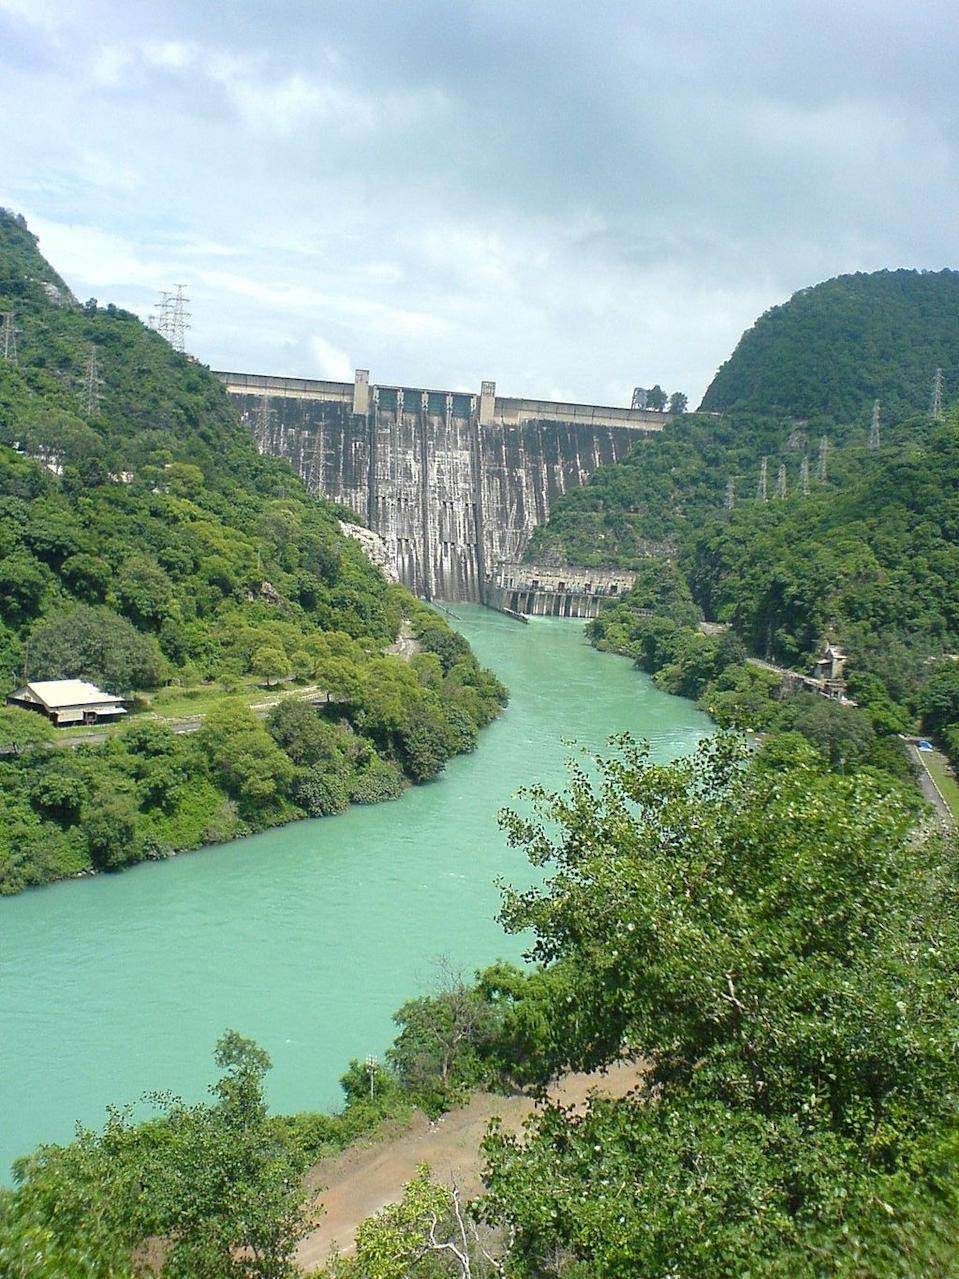 """Bhakra Dam is a concrete gravity dam across the Sutlej River, and is near the border between Punjab and Himachal Pradesh in northern India. The dam, located at a gorge near the (now submerged) upstream Bhakra village in Bilaspur district of Himachal Pradesh, is Asia's second highest at 225.55 m (740 ft) high next to the 261m Tehri Dam. The length of the dam (measured from the road above it) is 518.25 m; it is 9.1 m broad. Its reservoir, known as the """"Gobind Sagar"""", stores up to 9.34 billion cubic meters of water, enough to drain the whole of Chandigarh, parts of Haryana, Punjab and Delhi.The 90 km long reservoir created by the Bhakra Dam is spread over an area of 168.35 km2. In terms of storage of water, it withholds the second largest reservoir in India, the first being Indira Sagar dam in Madhya Pradesh with capacity of 12.22 billion cu m.Nangal dam is another dam downstream of Bhakra dam. [Photo by KawalSingh at en.wikipedia (Transferred from en.wikipedia - Public domain from Wikimedia Commons]"""